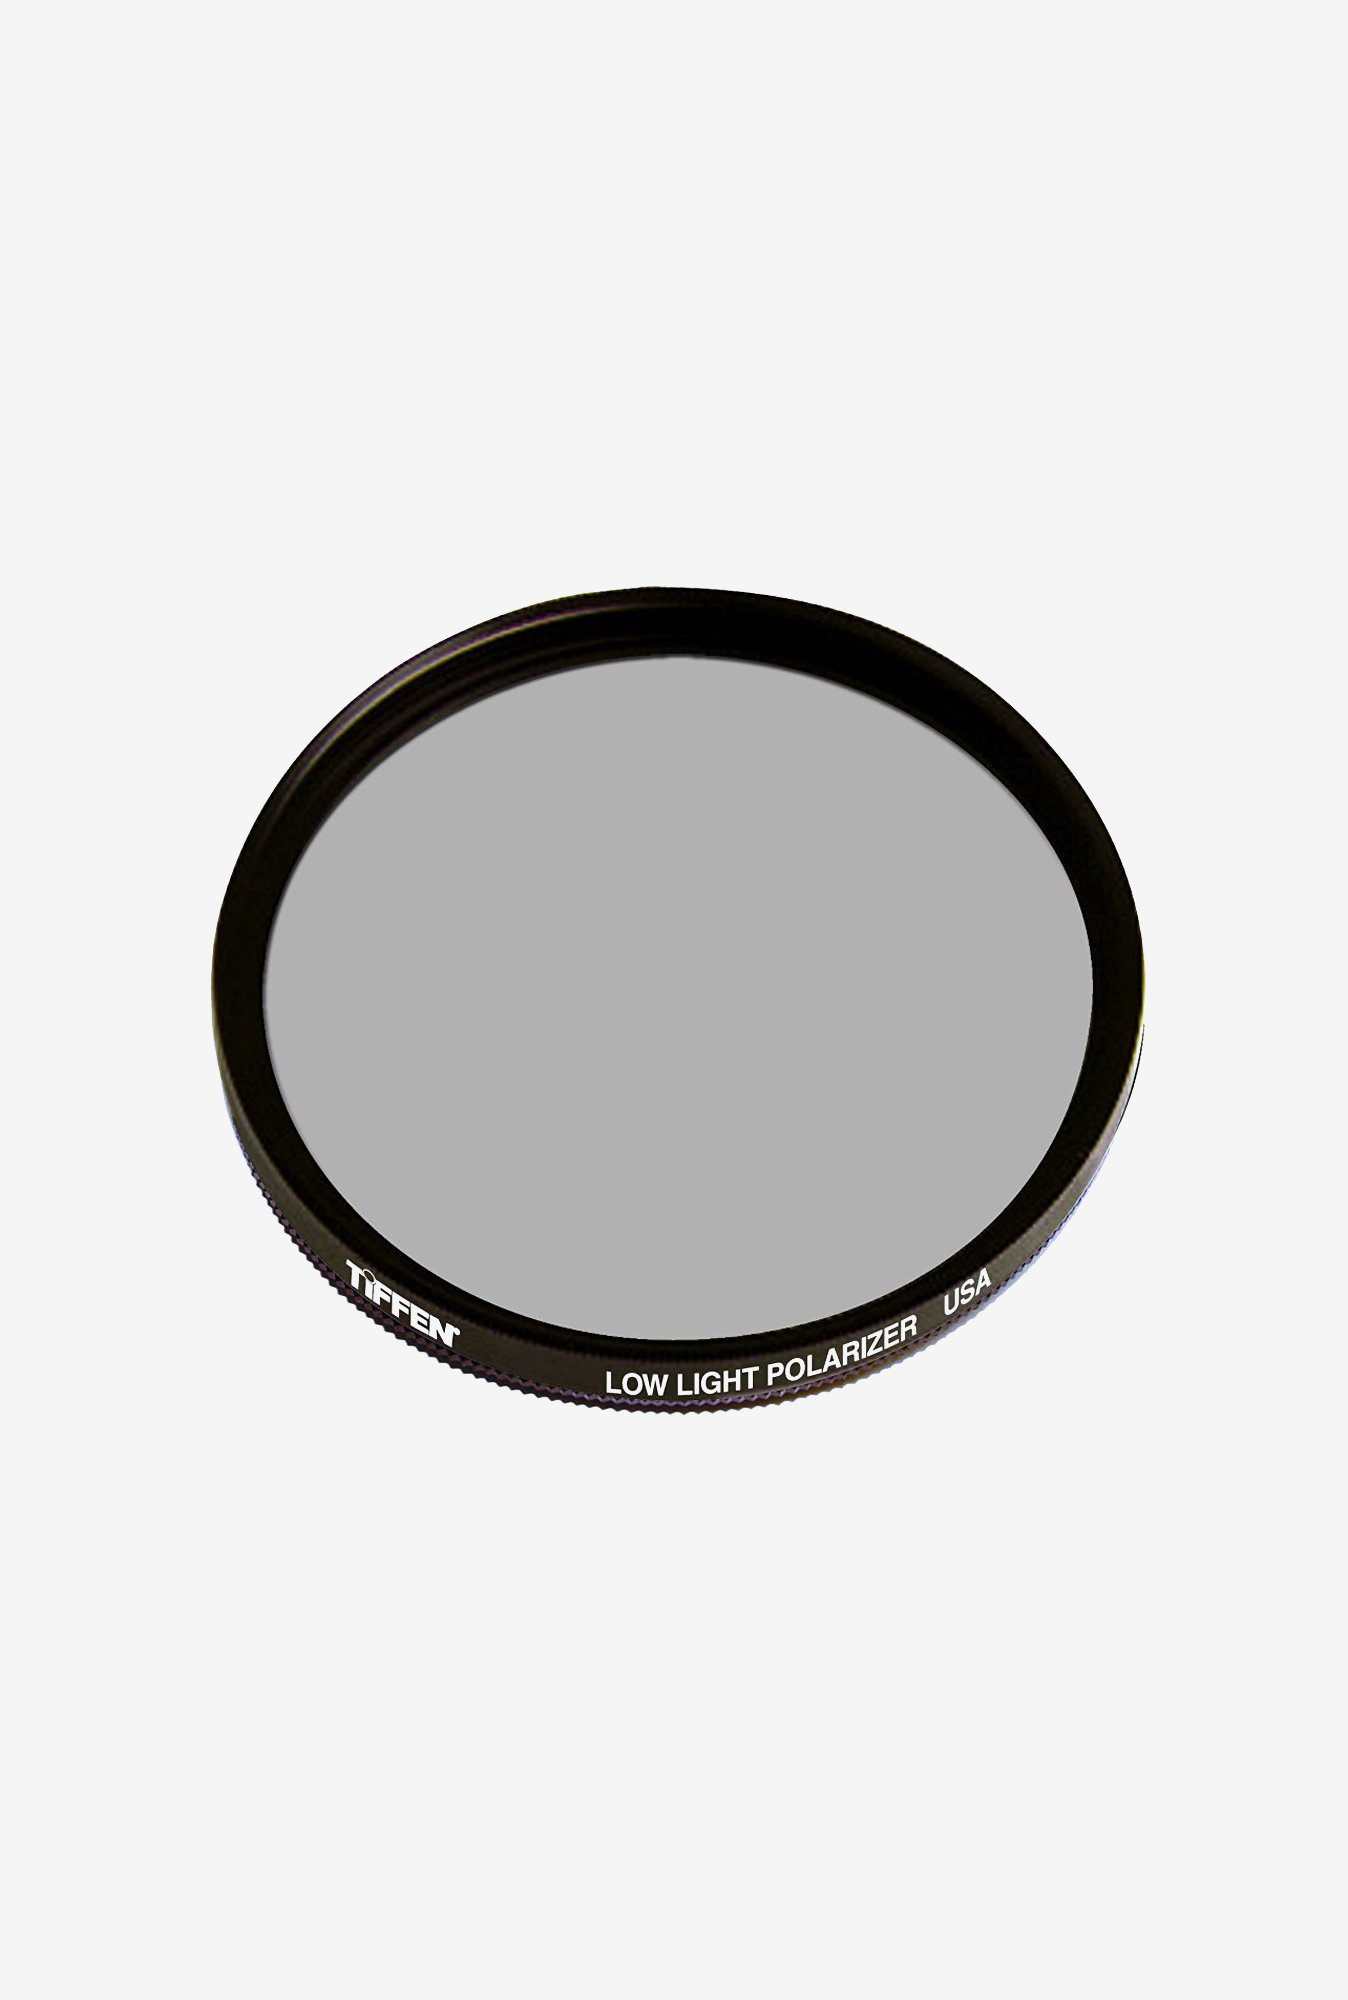 Tiffen 49mm Low Light Linear Polarizer Filter (Black)